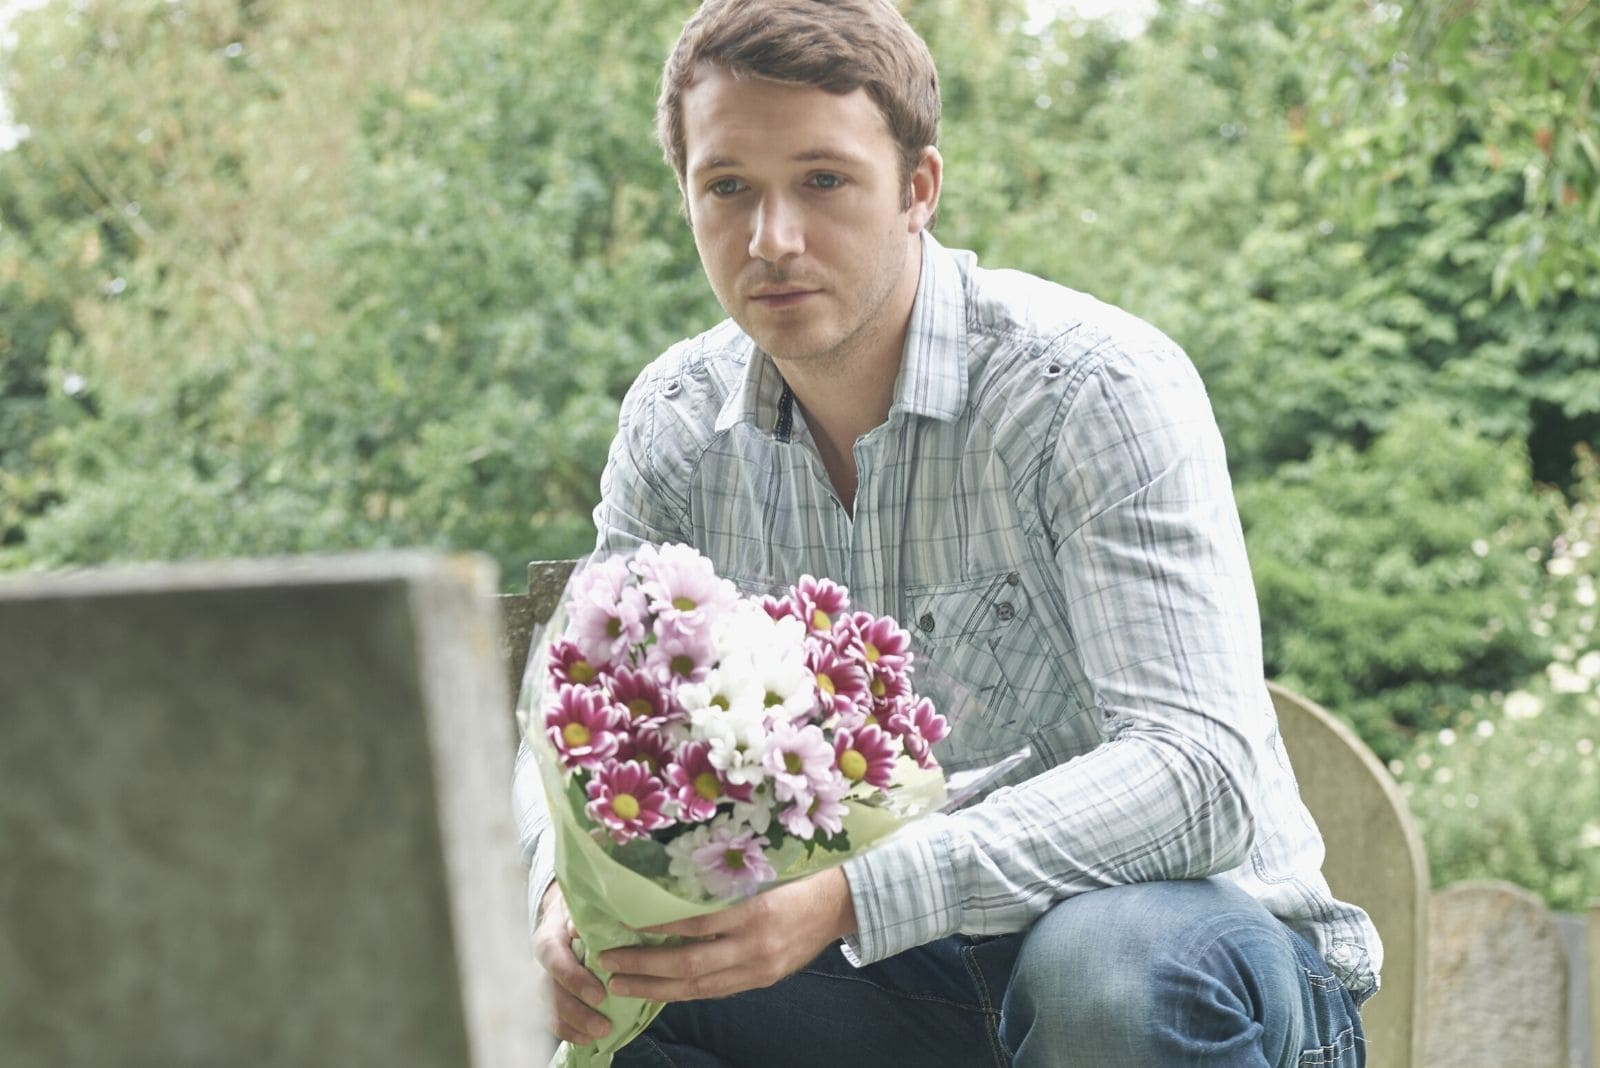 man visiting grave of his loved one brininging a buoquet of flowers